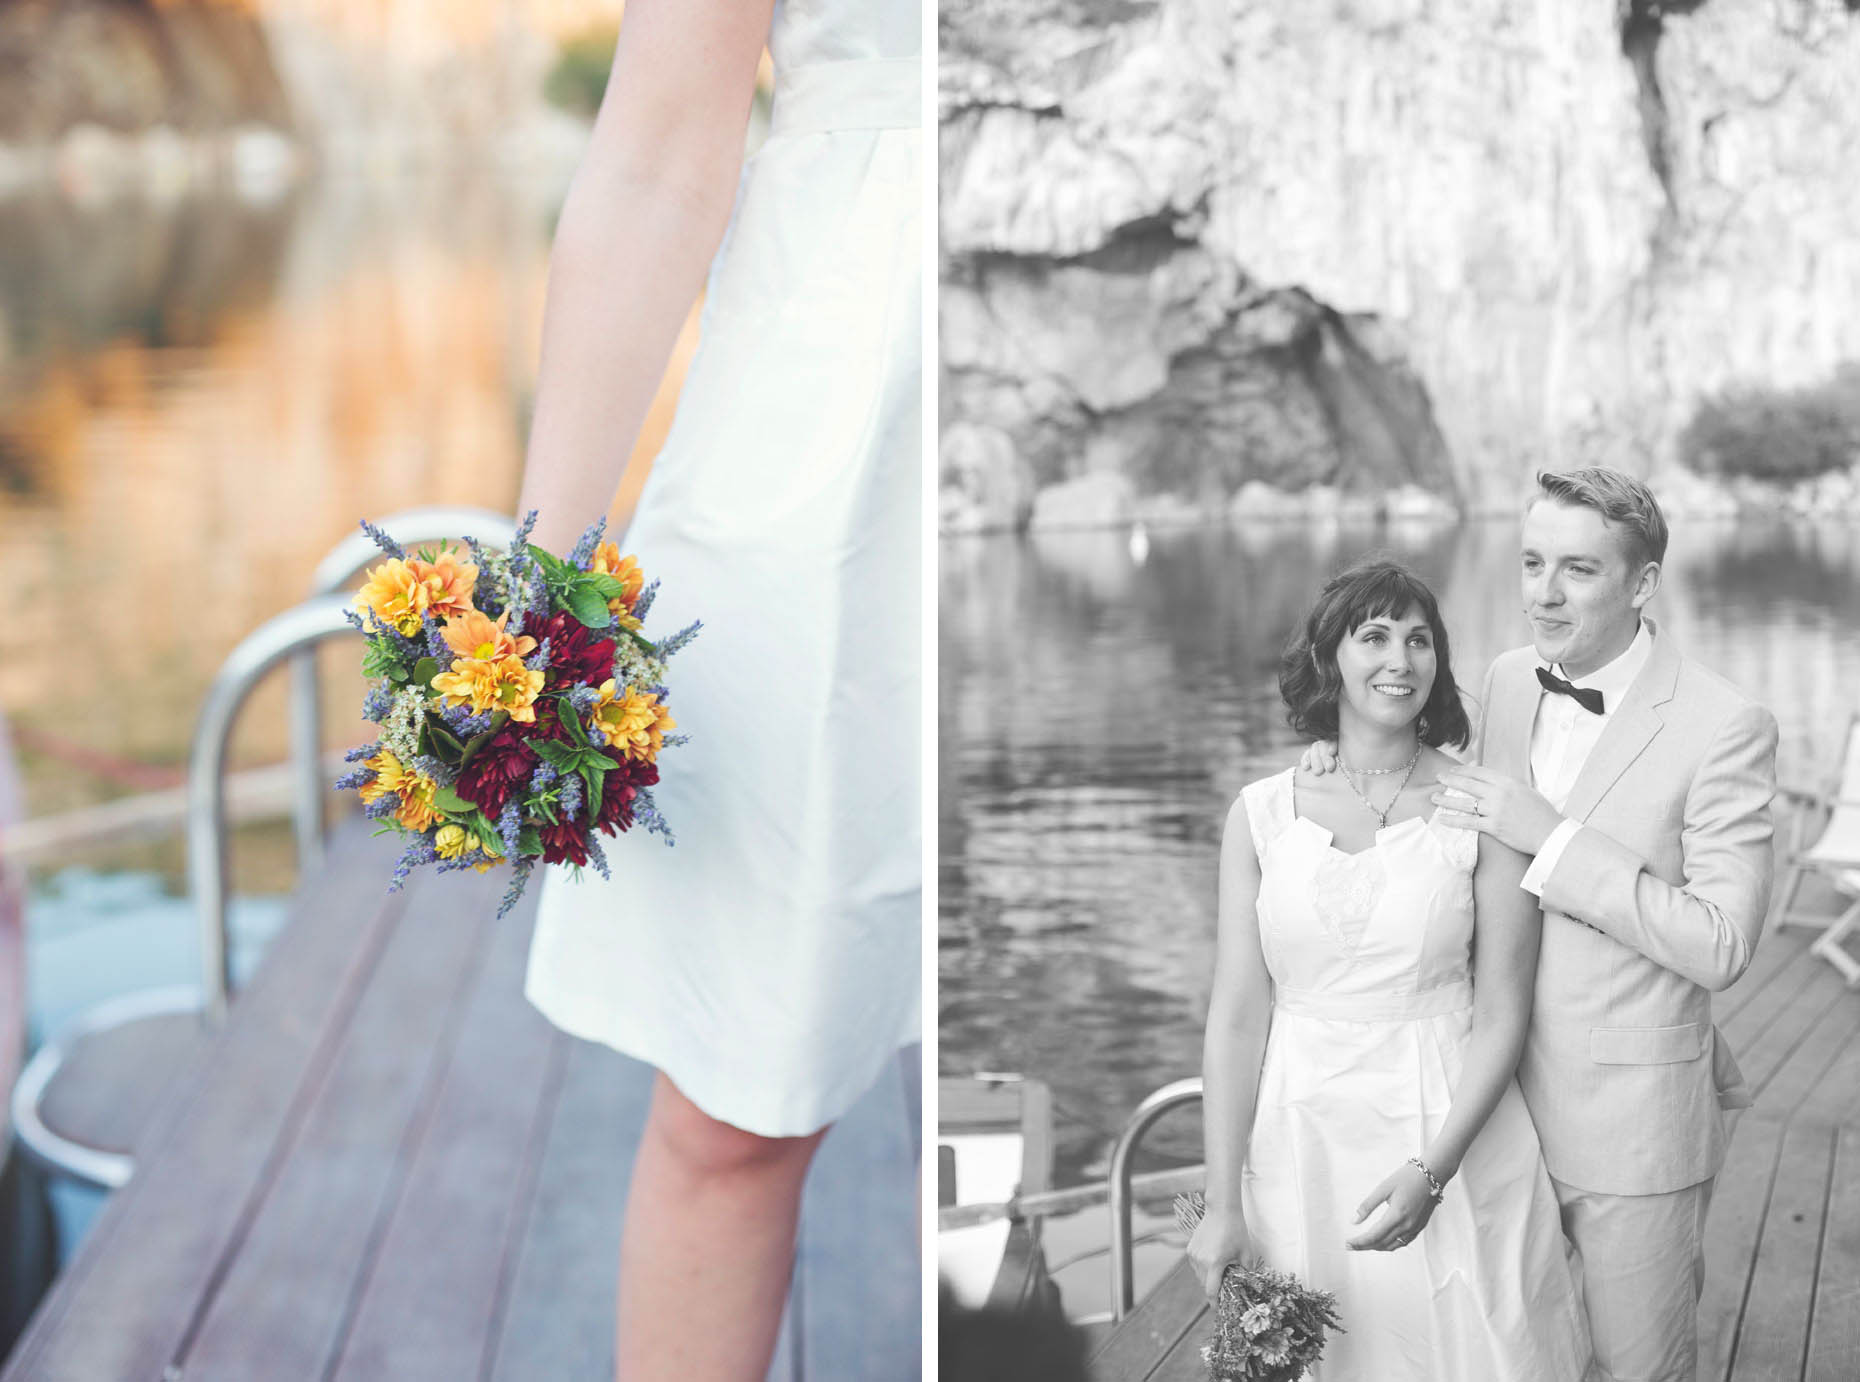 Fiorello Photography - Wedding at Vouliagmeni Lake